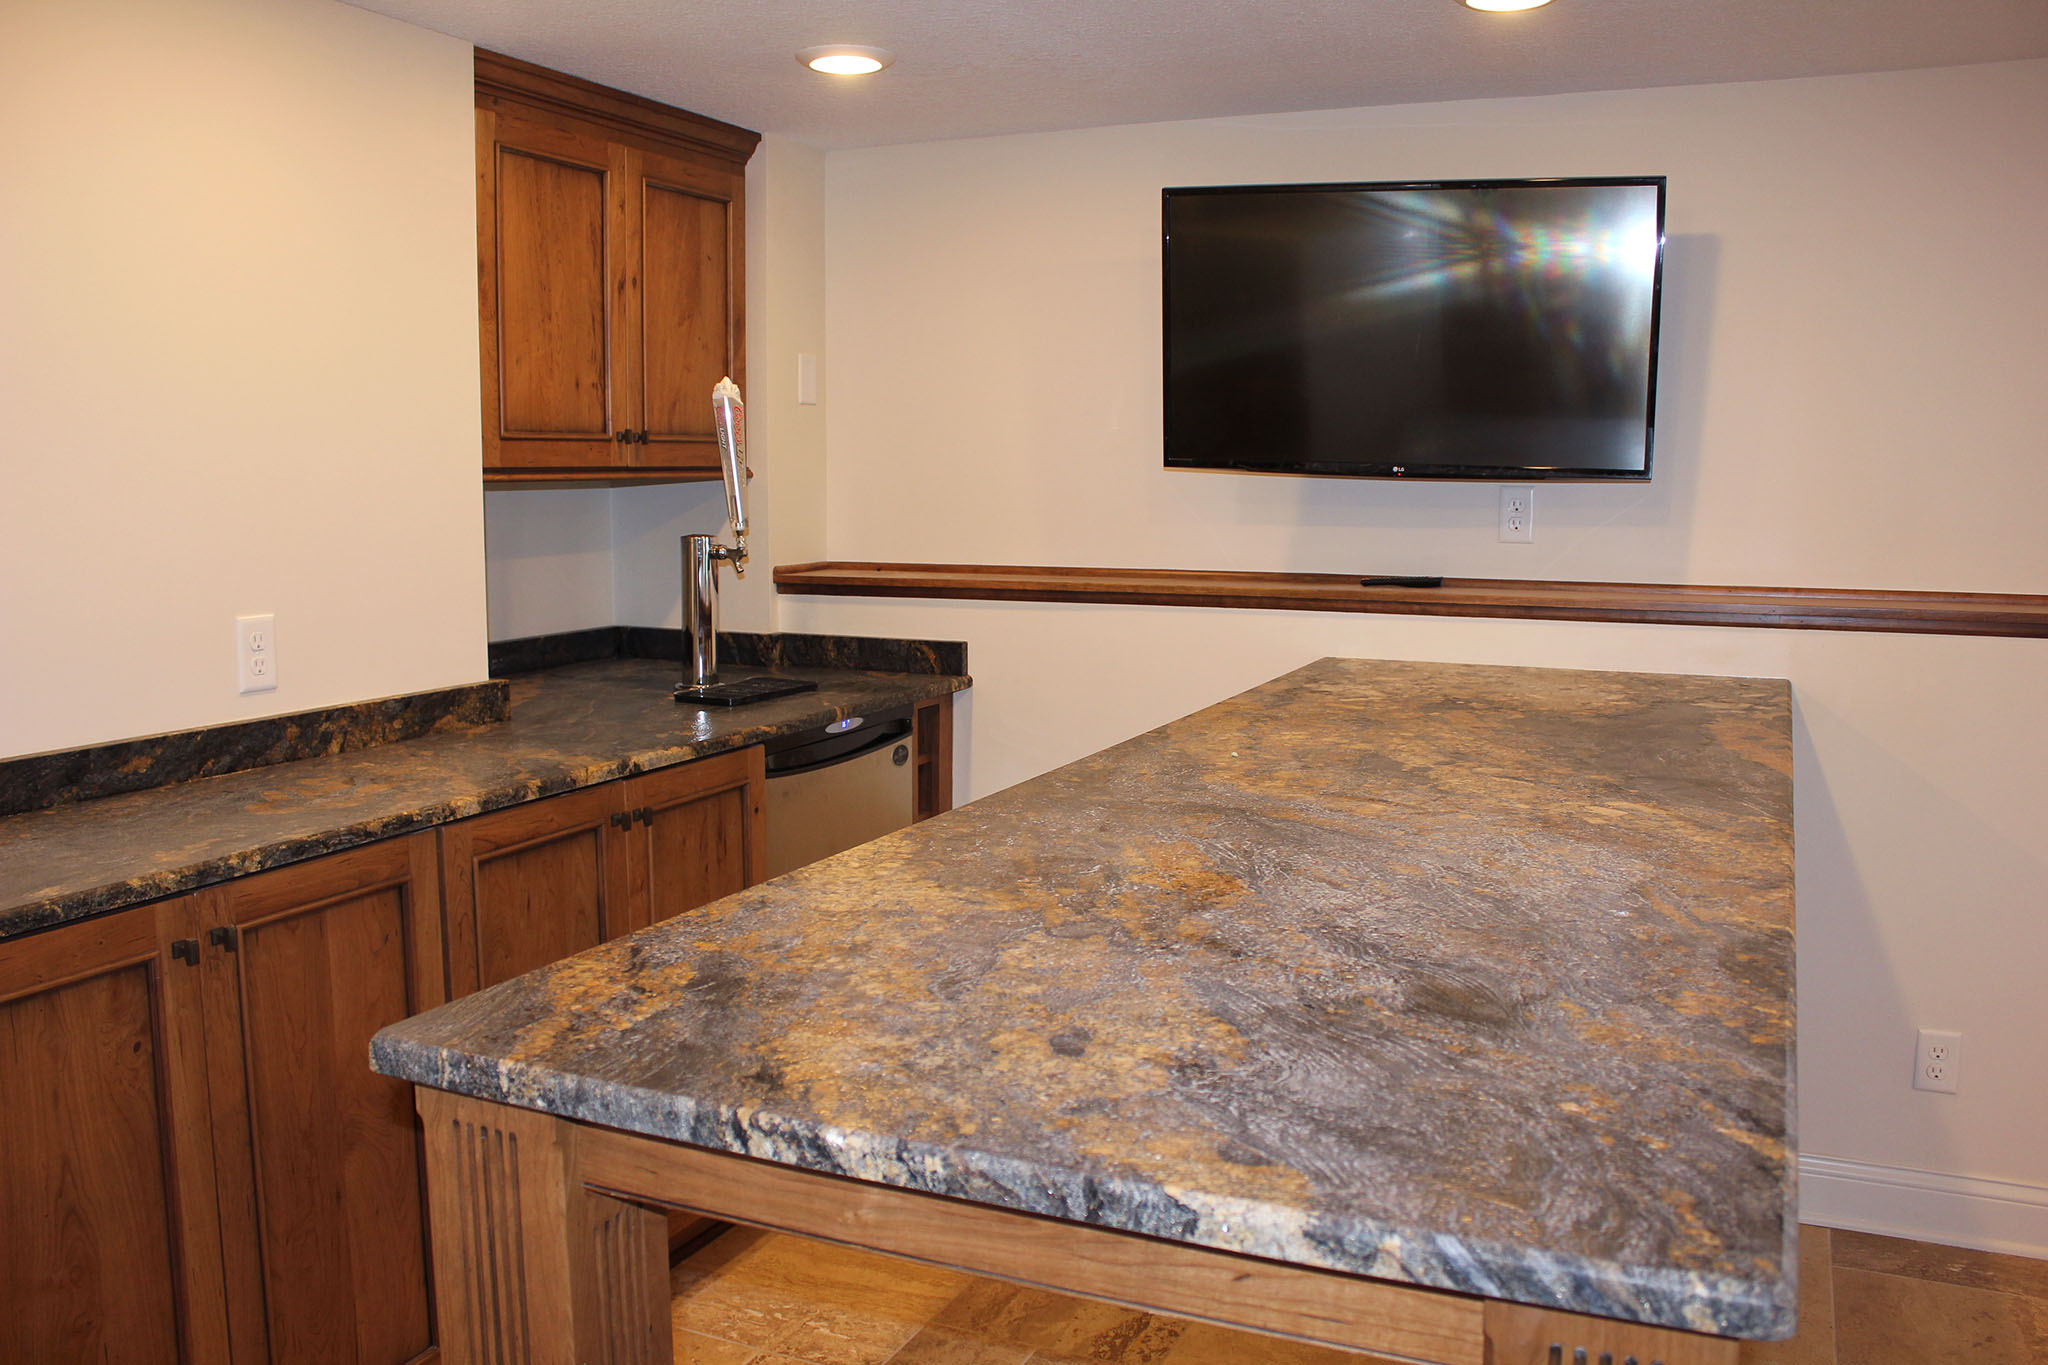 Basement man cave bar area with raised height cabinets, granite countertop, wall cabinets and a kegerator